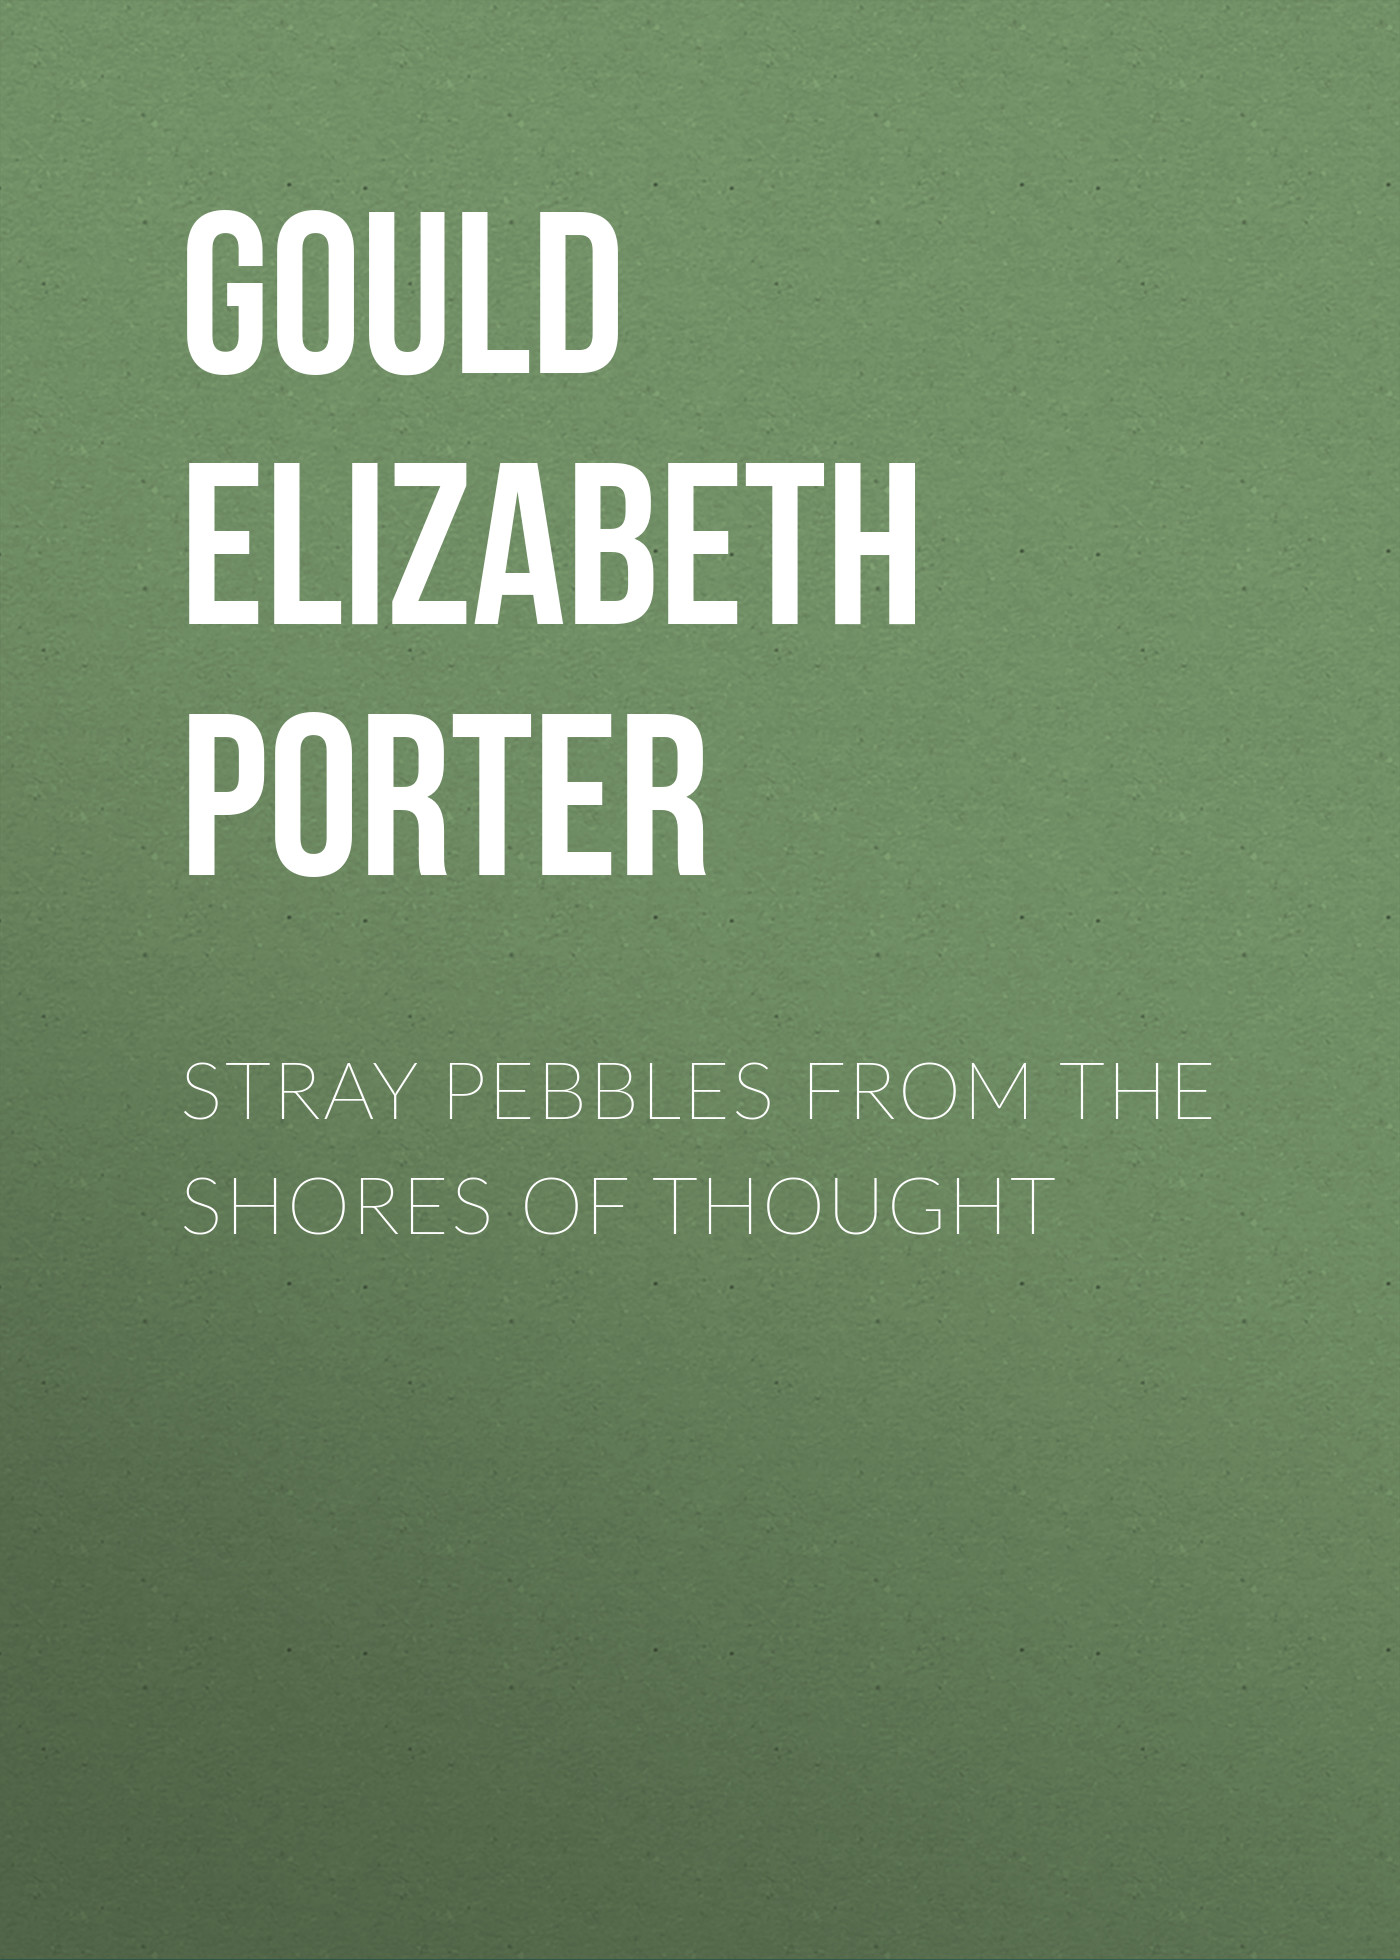 Gould Elizabeth Porter Stray Pebbles from the Shores of Thought